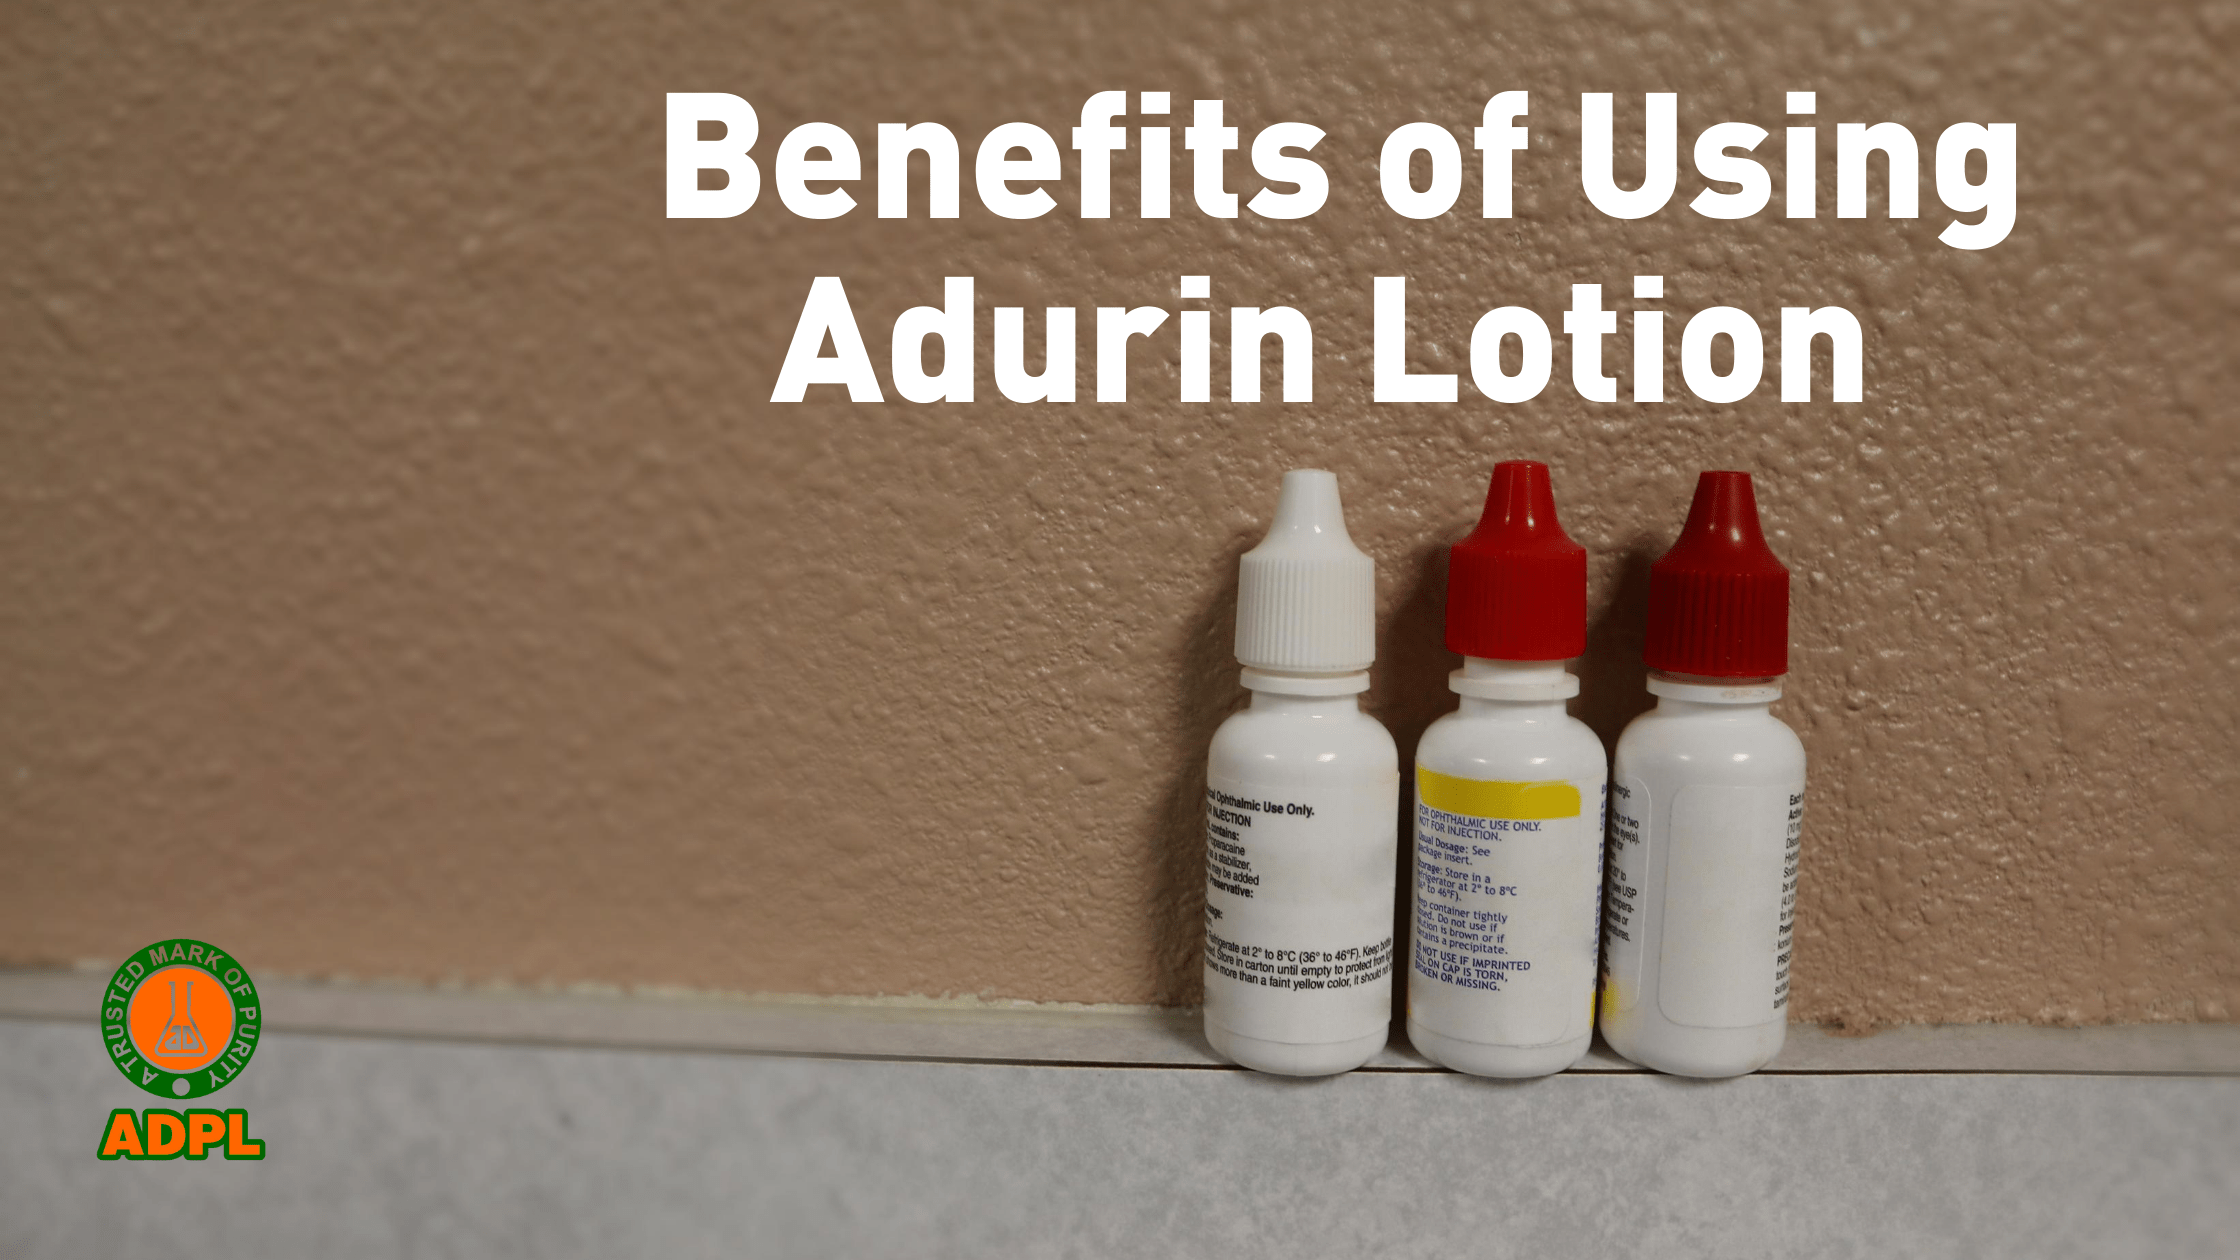 Benefits of using Adurin lotion